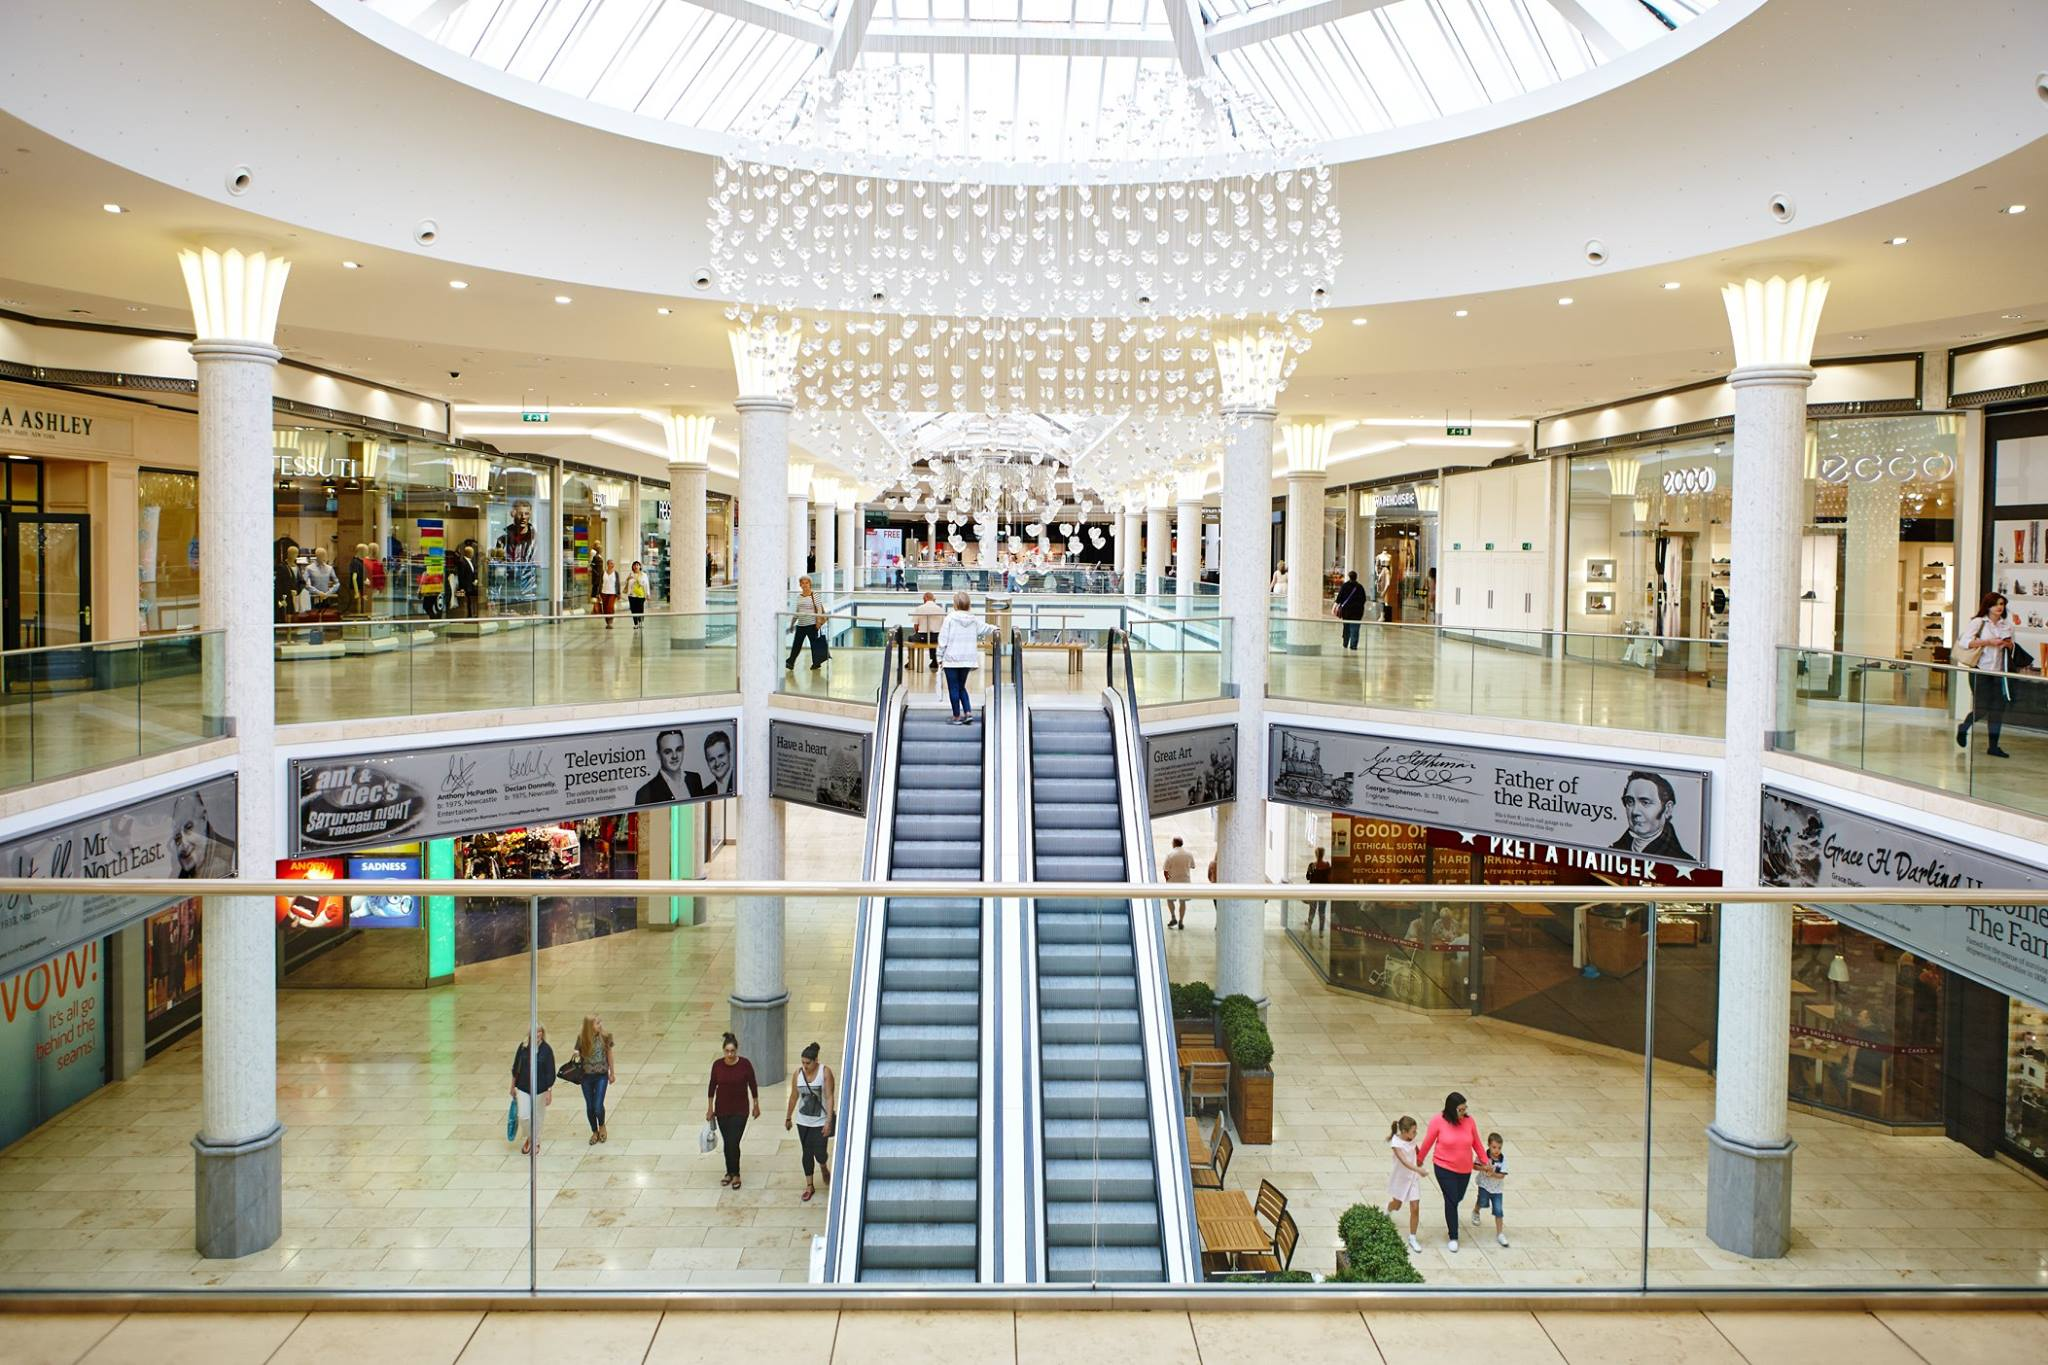 guide to Newcastle, featuring an image of the inside of the Metro Centre